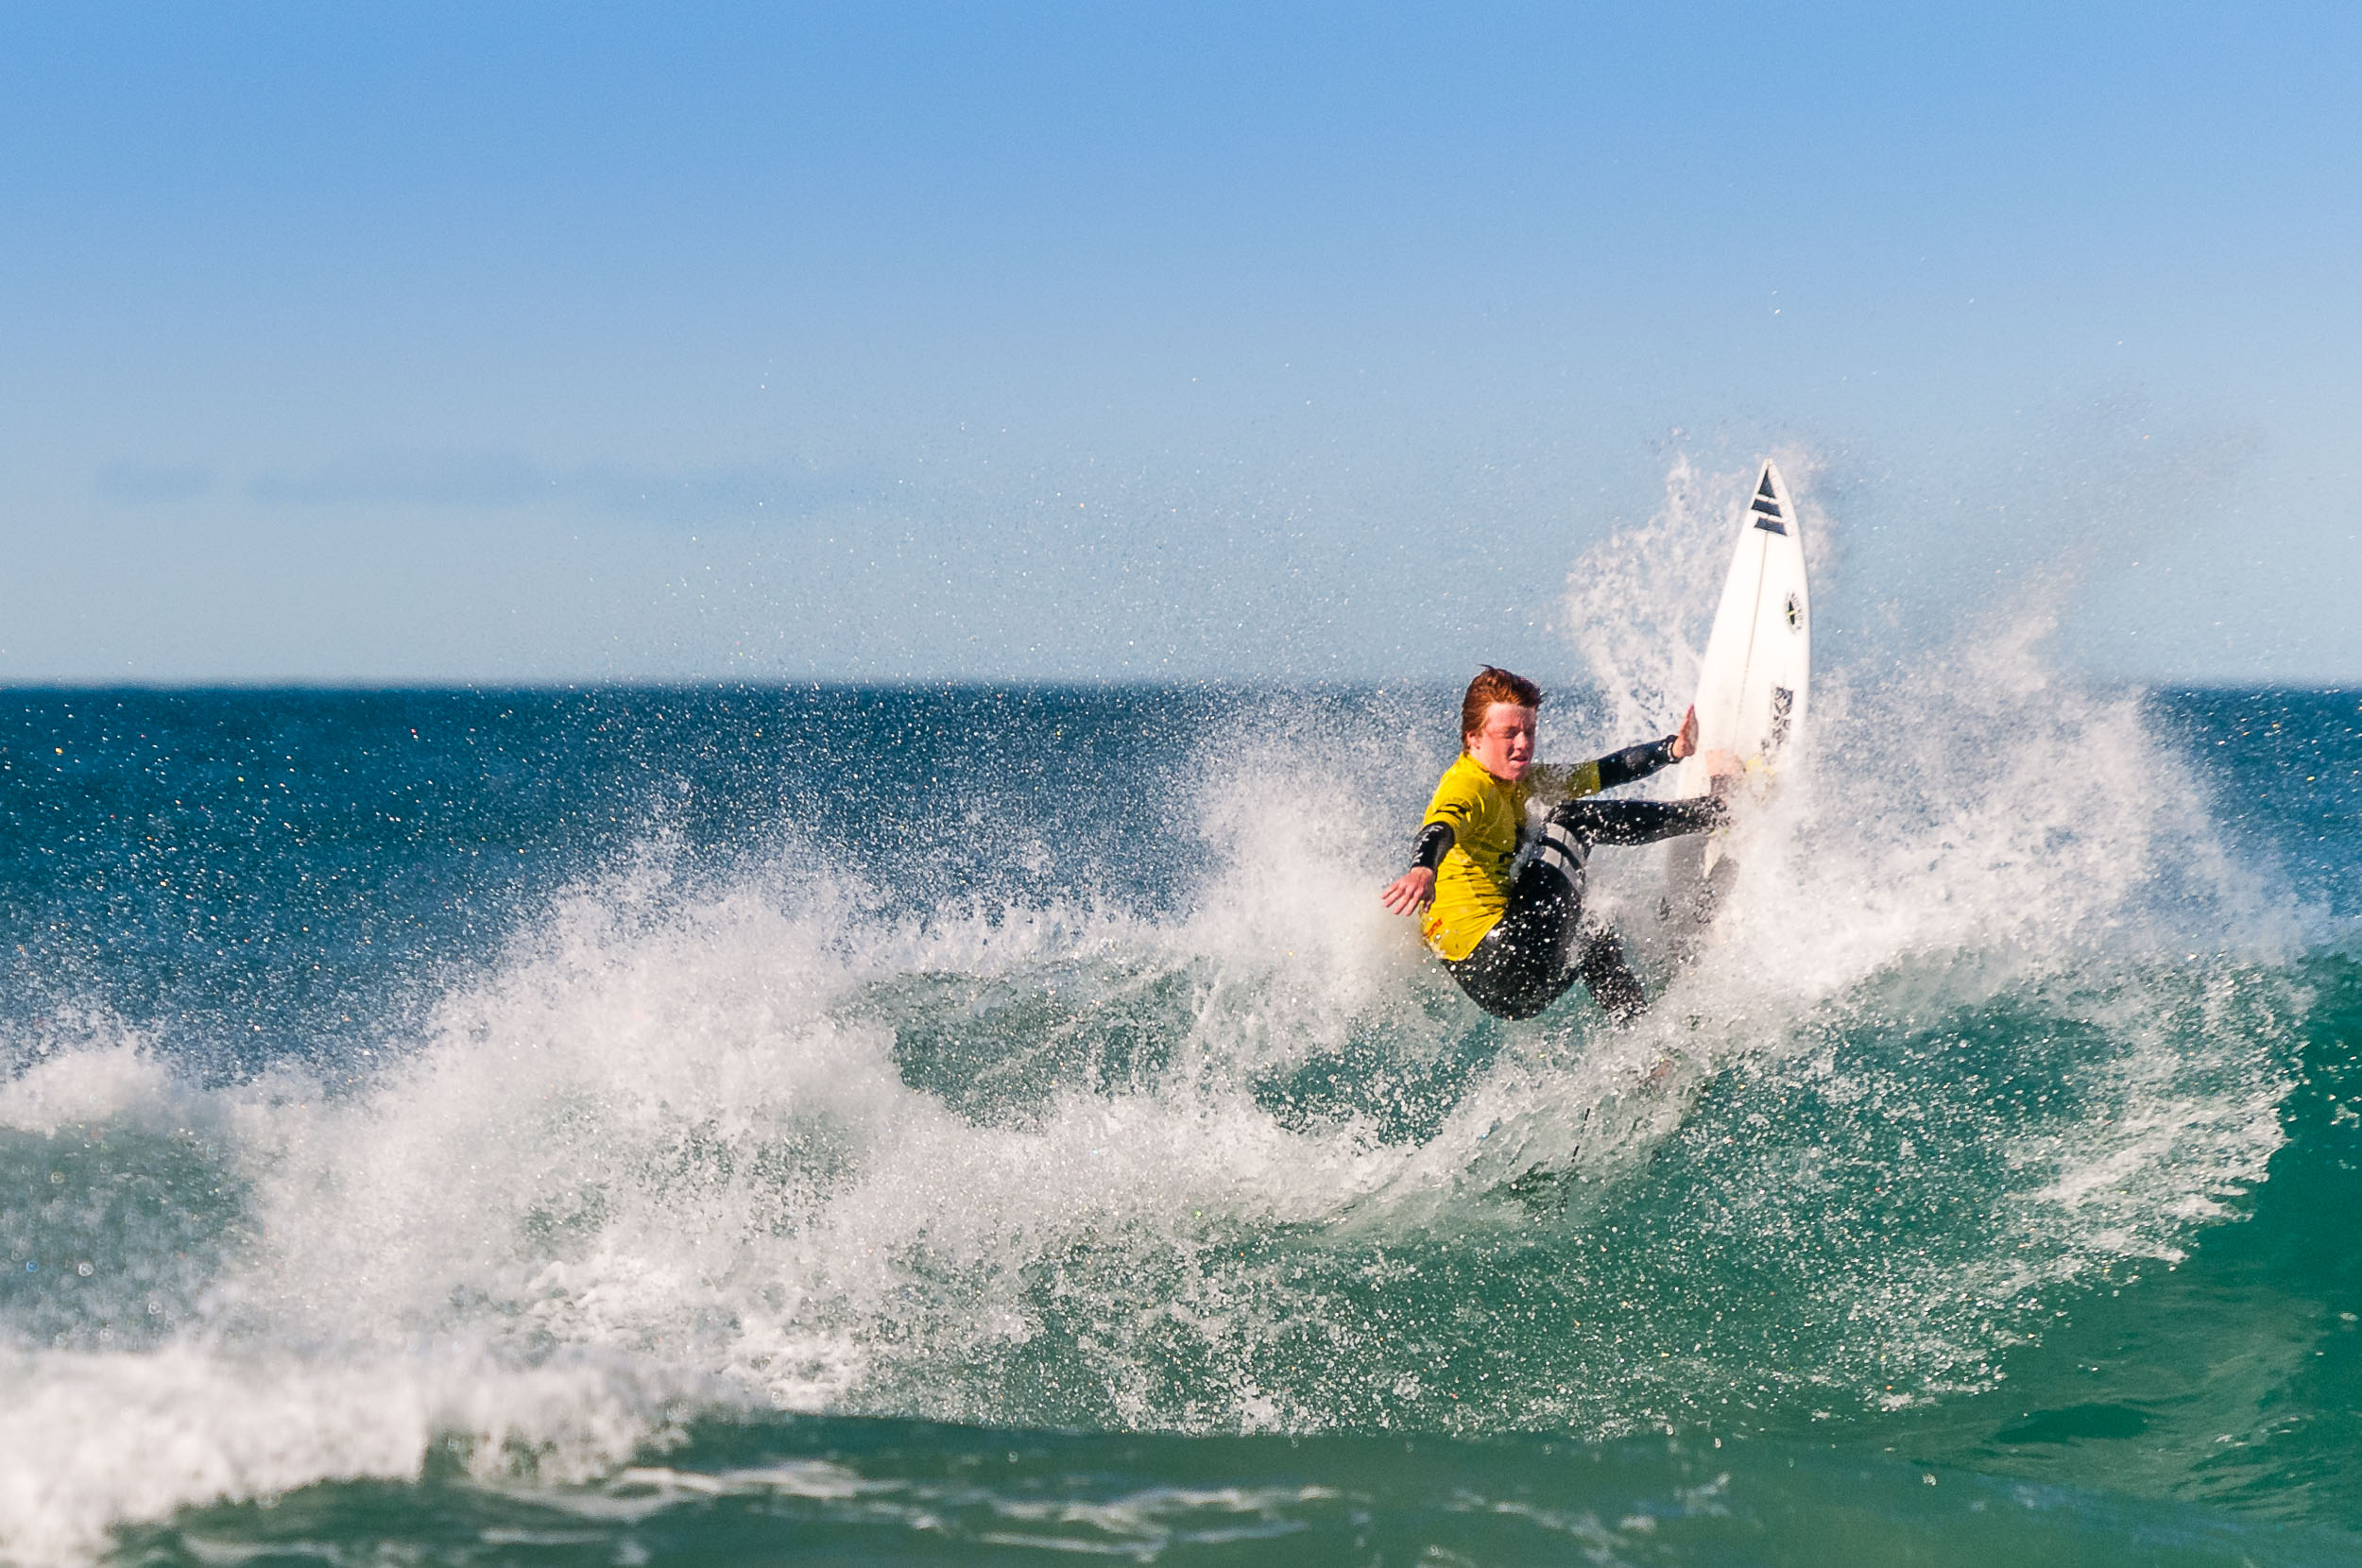 Competitor at ParkoGrom surfing comp, Sunshine Coast, Queensland